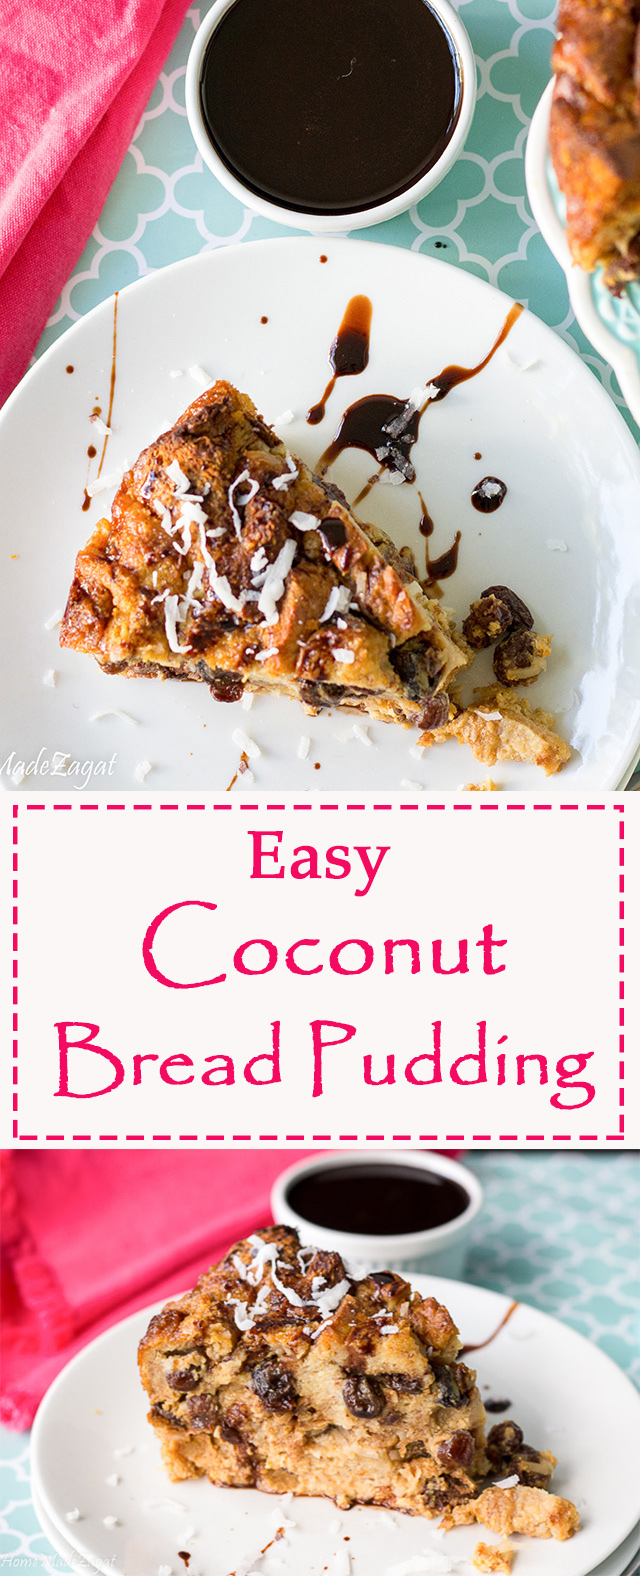 Easy Coconut Bread Pudding